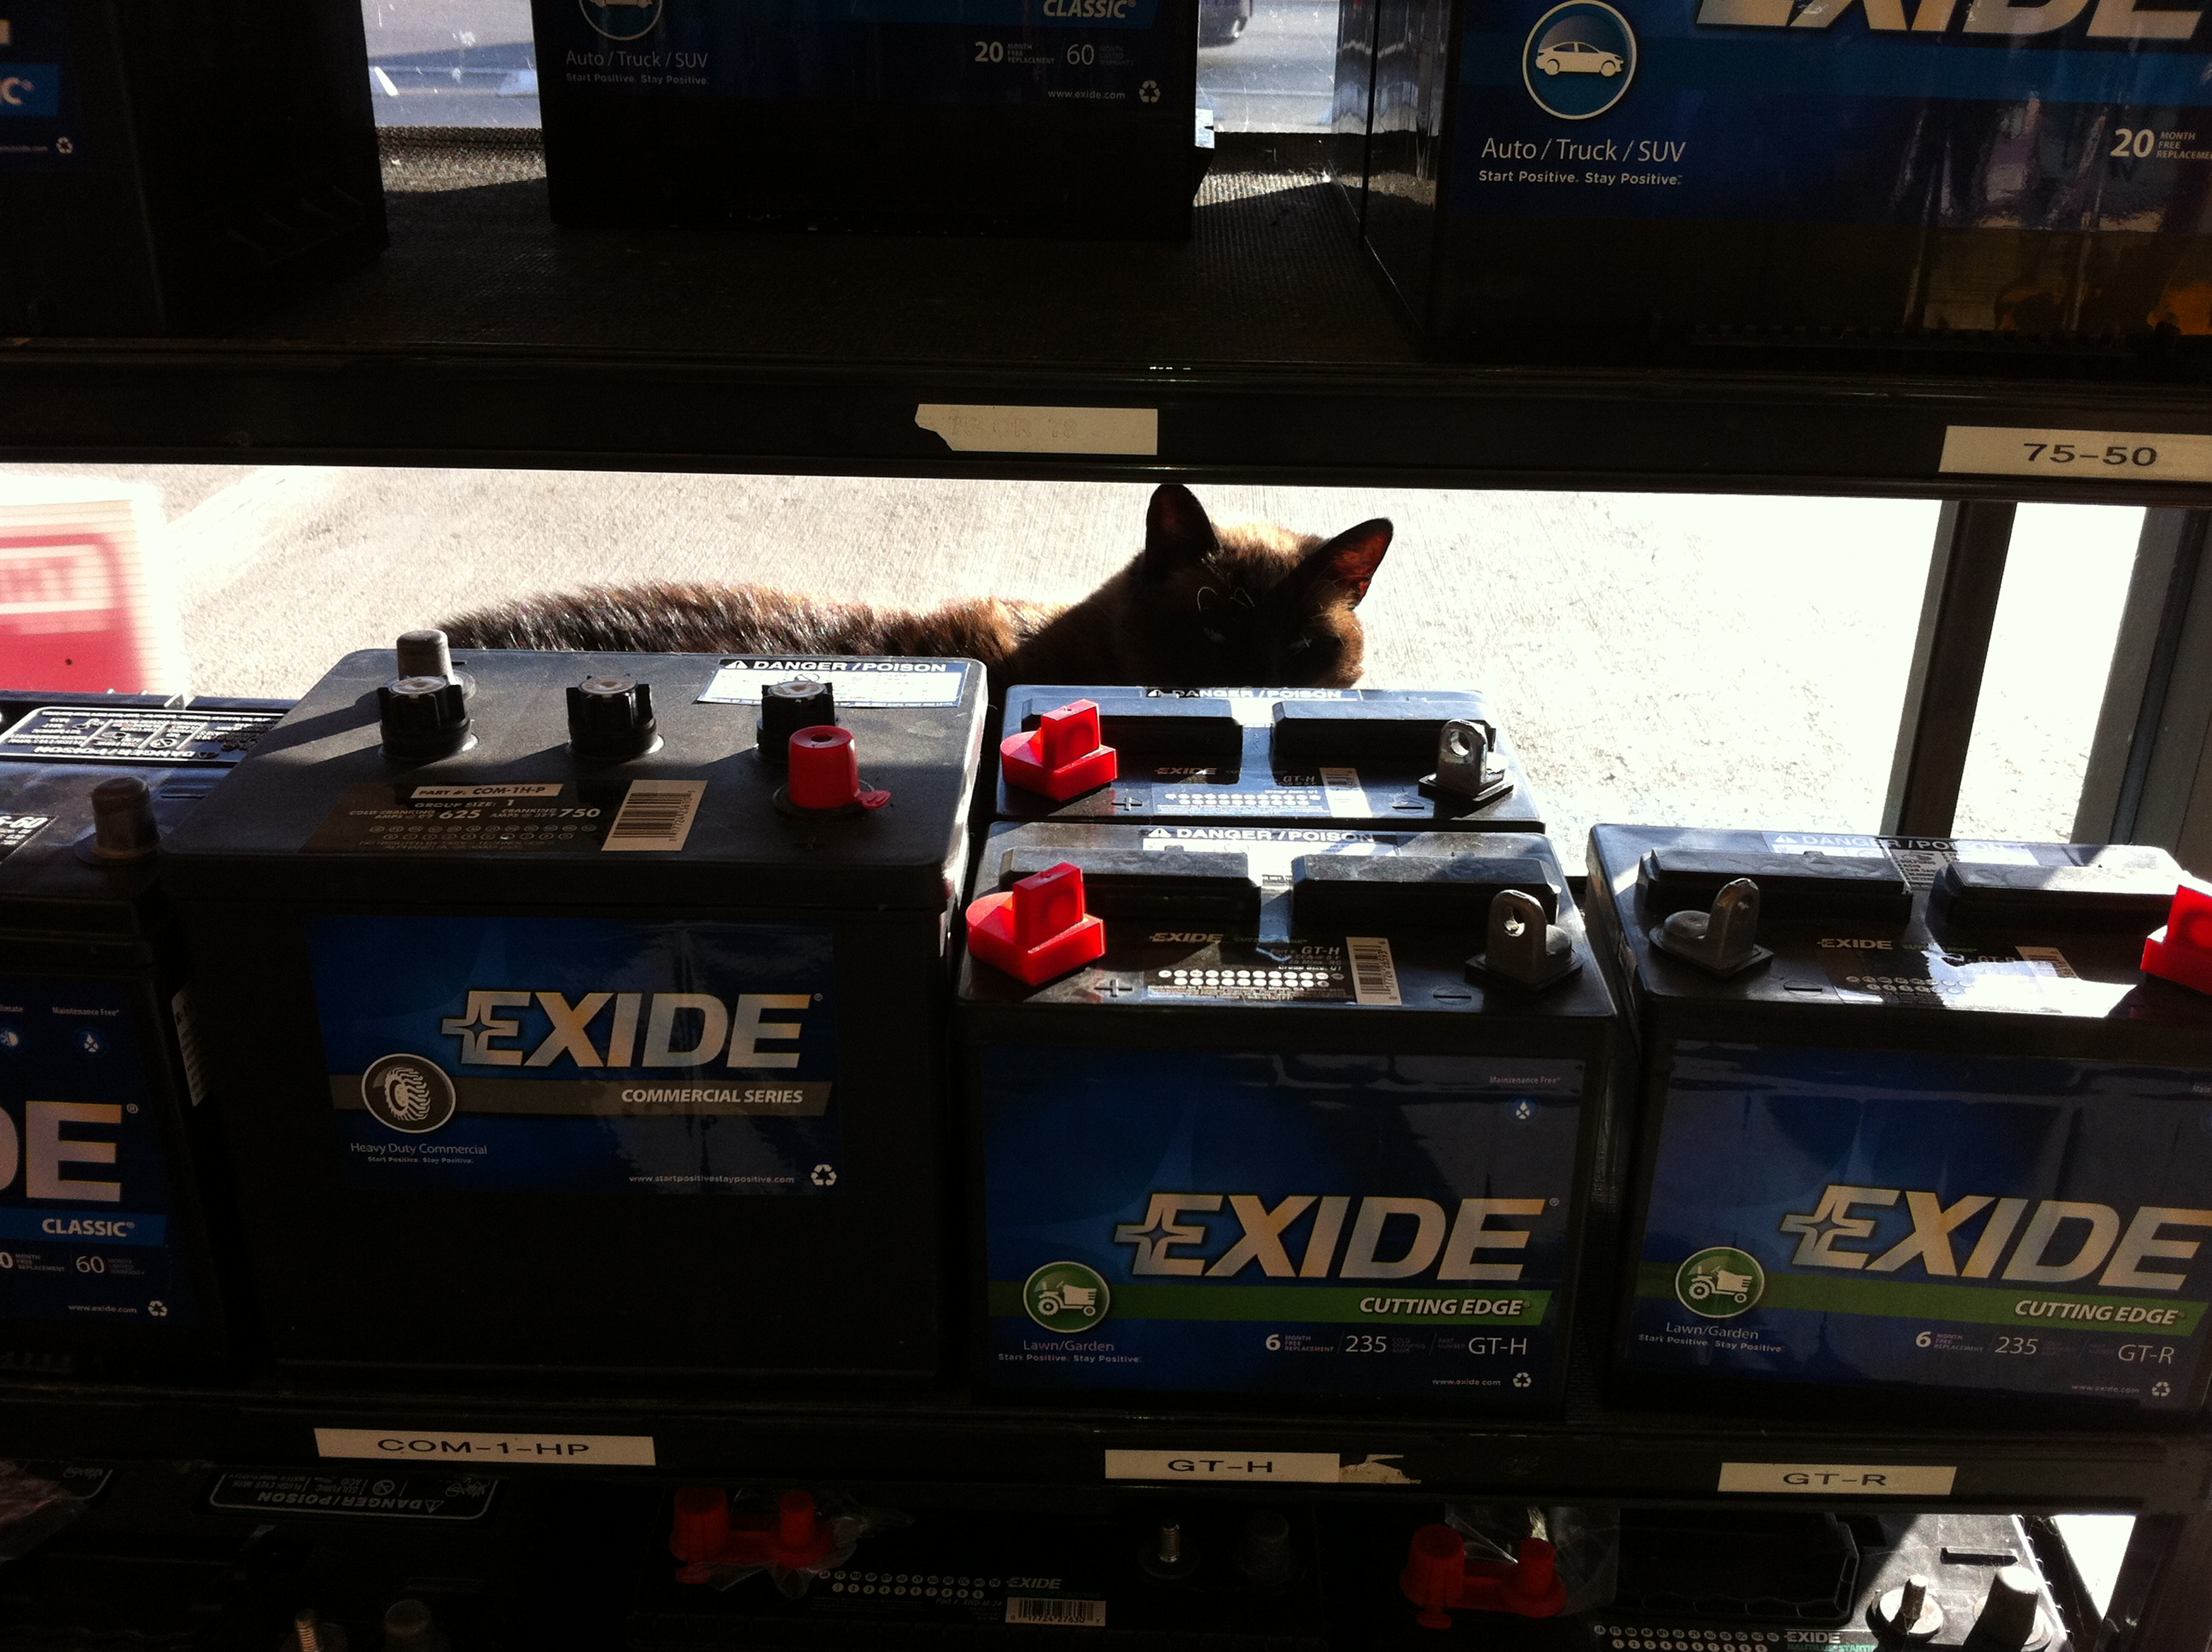 I go to the auto parts store to get a clutch alignment tool, fuel filter and some hose and I see Turbo the auto parts store security cat has staked out the warm sunny spot by the battery display rack. She's a big cat, at least 14 pounds and she's always there when I go in to get stuff.